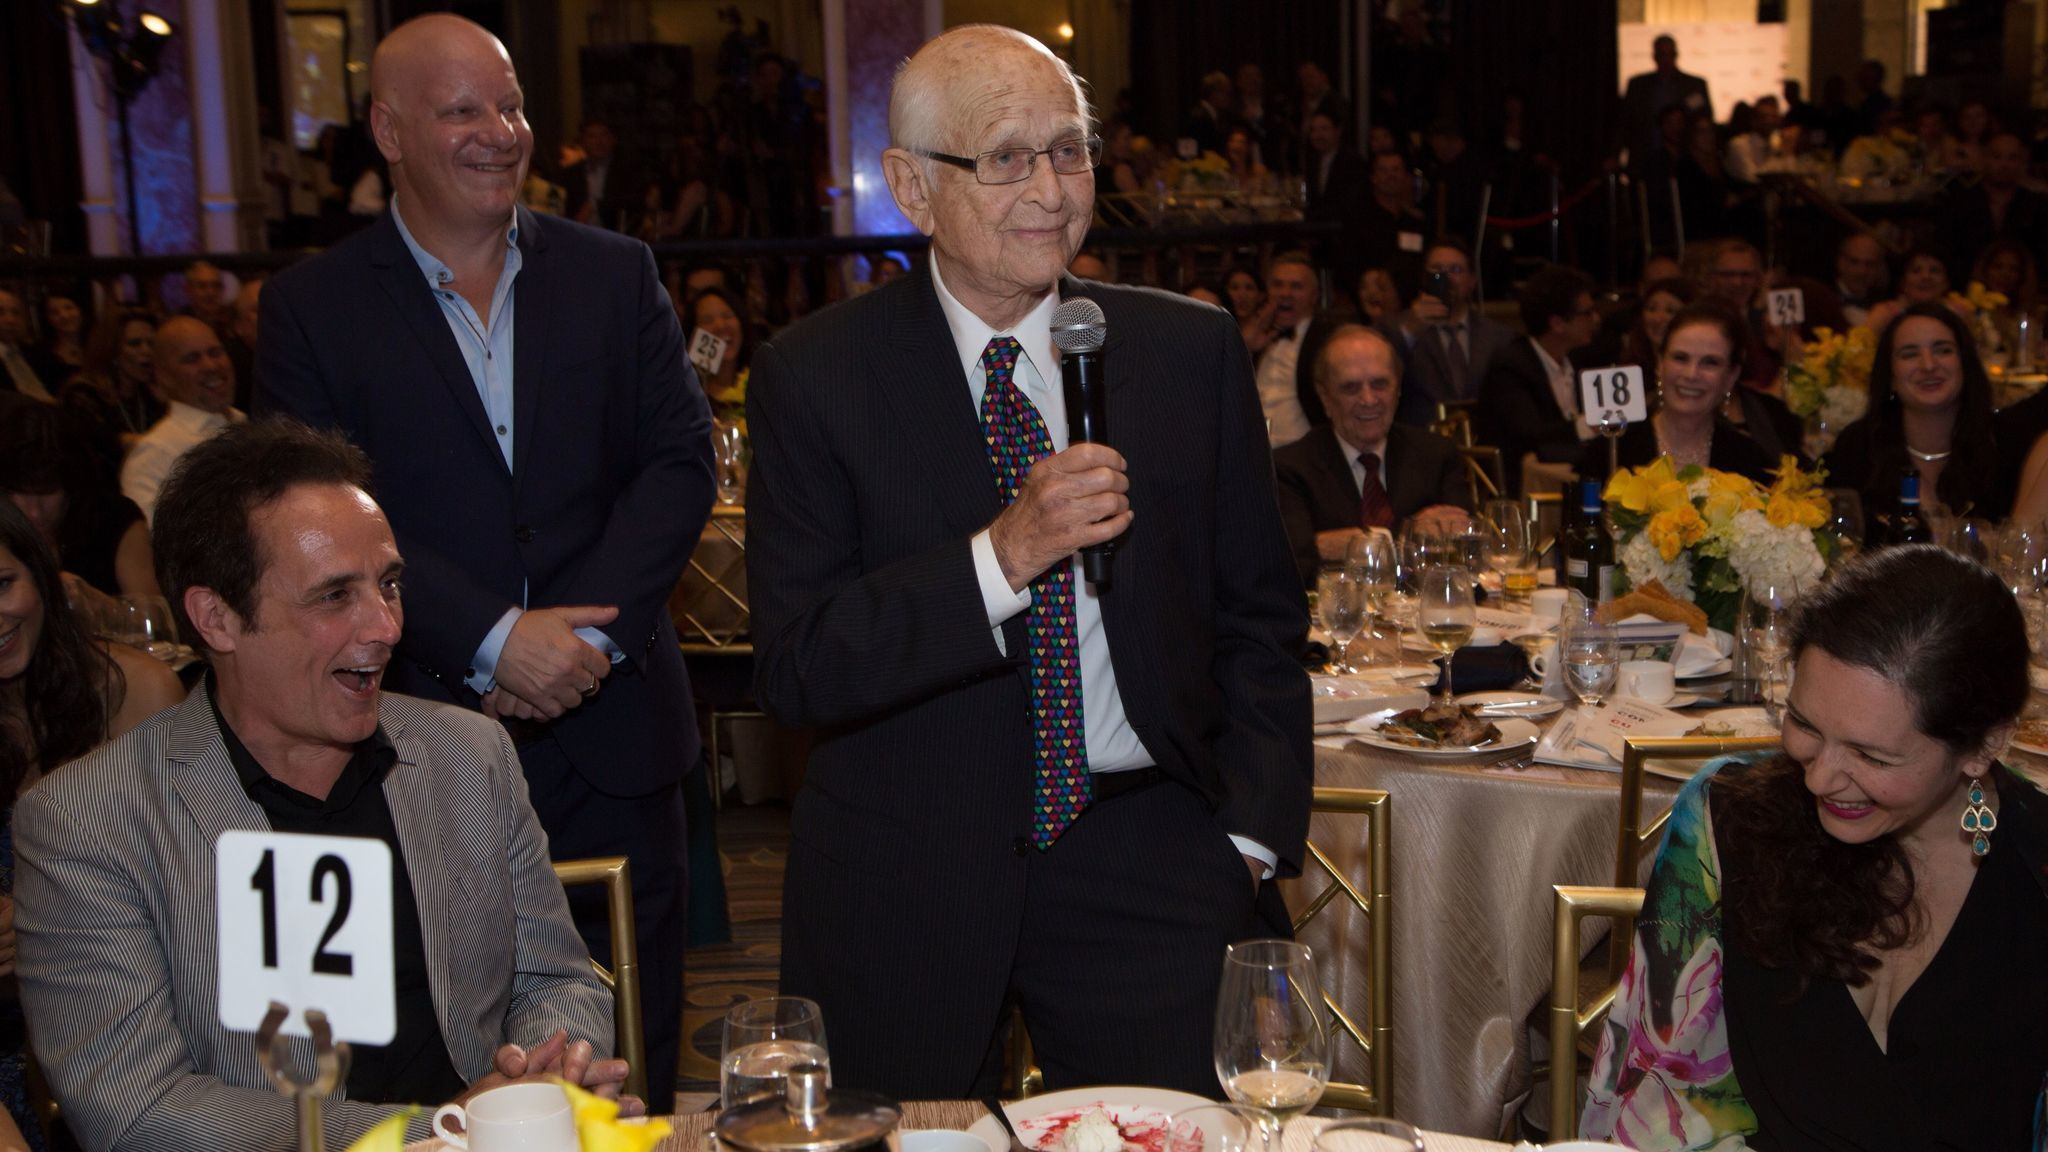 Norman Lear speaks during the Cool Comedy Hot Cuisine charity event.